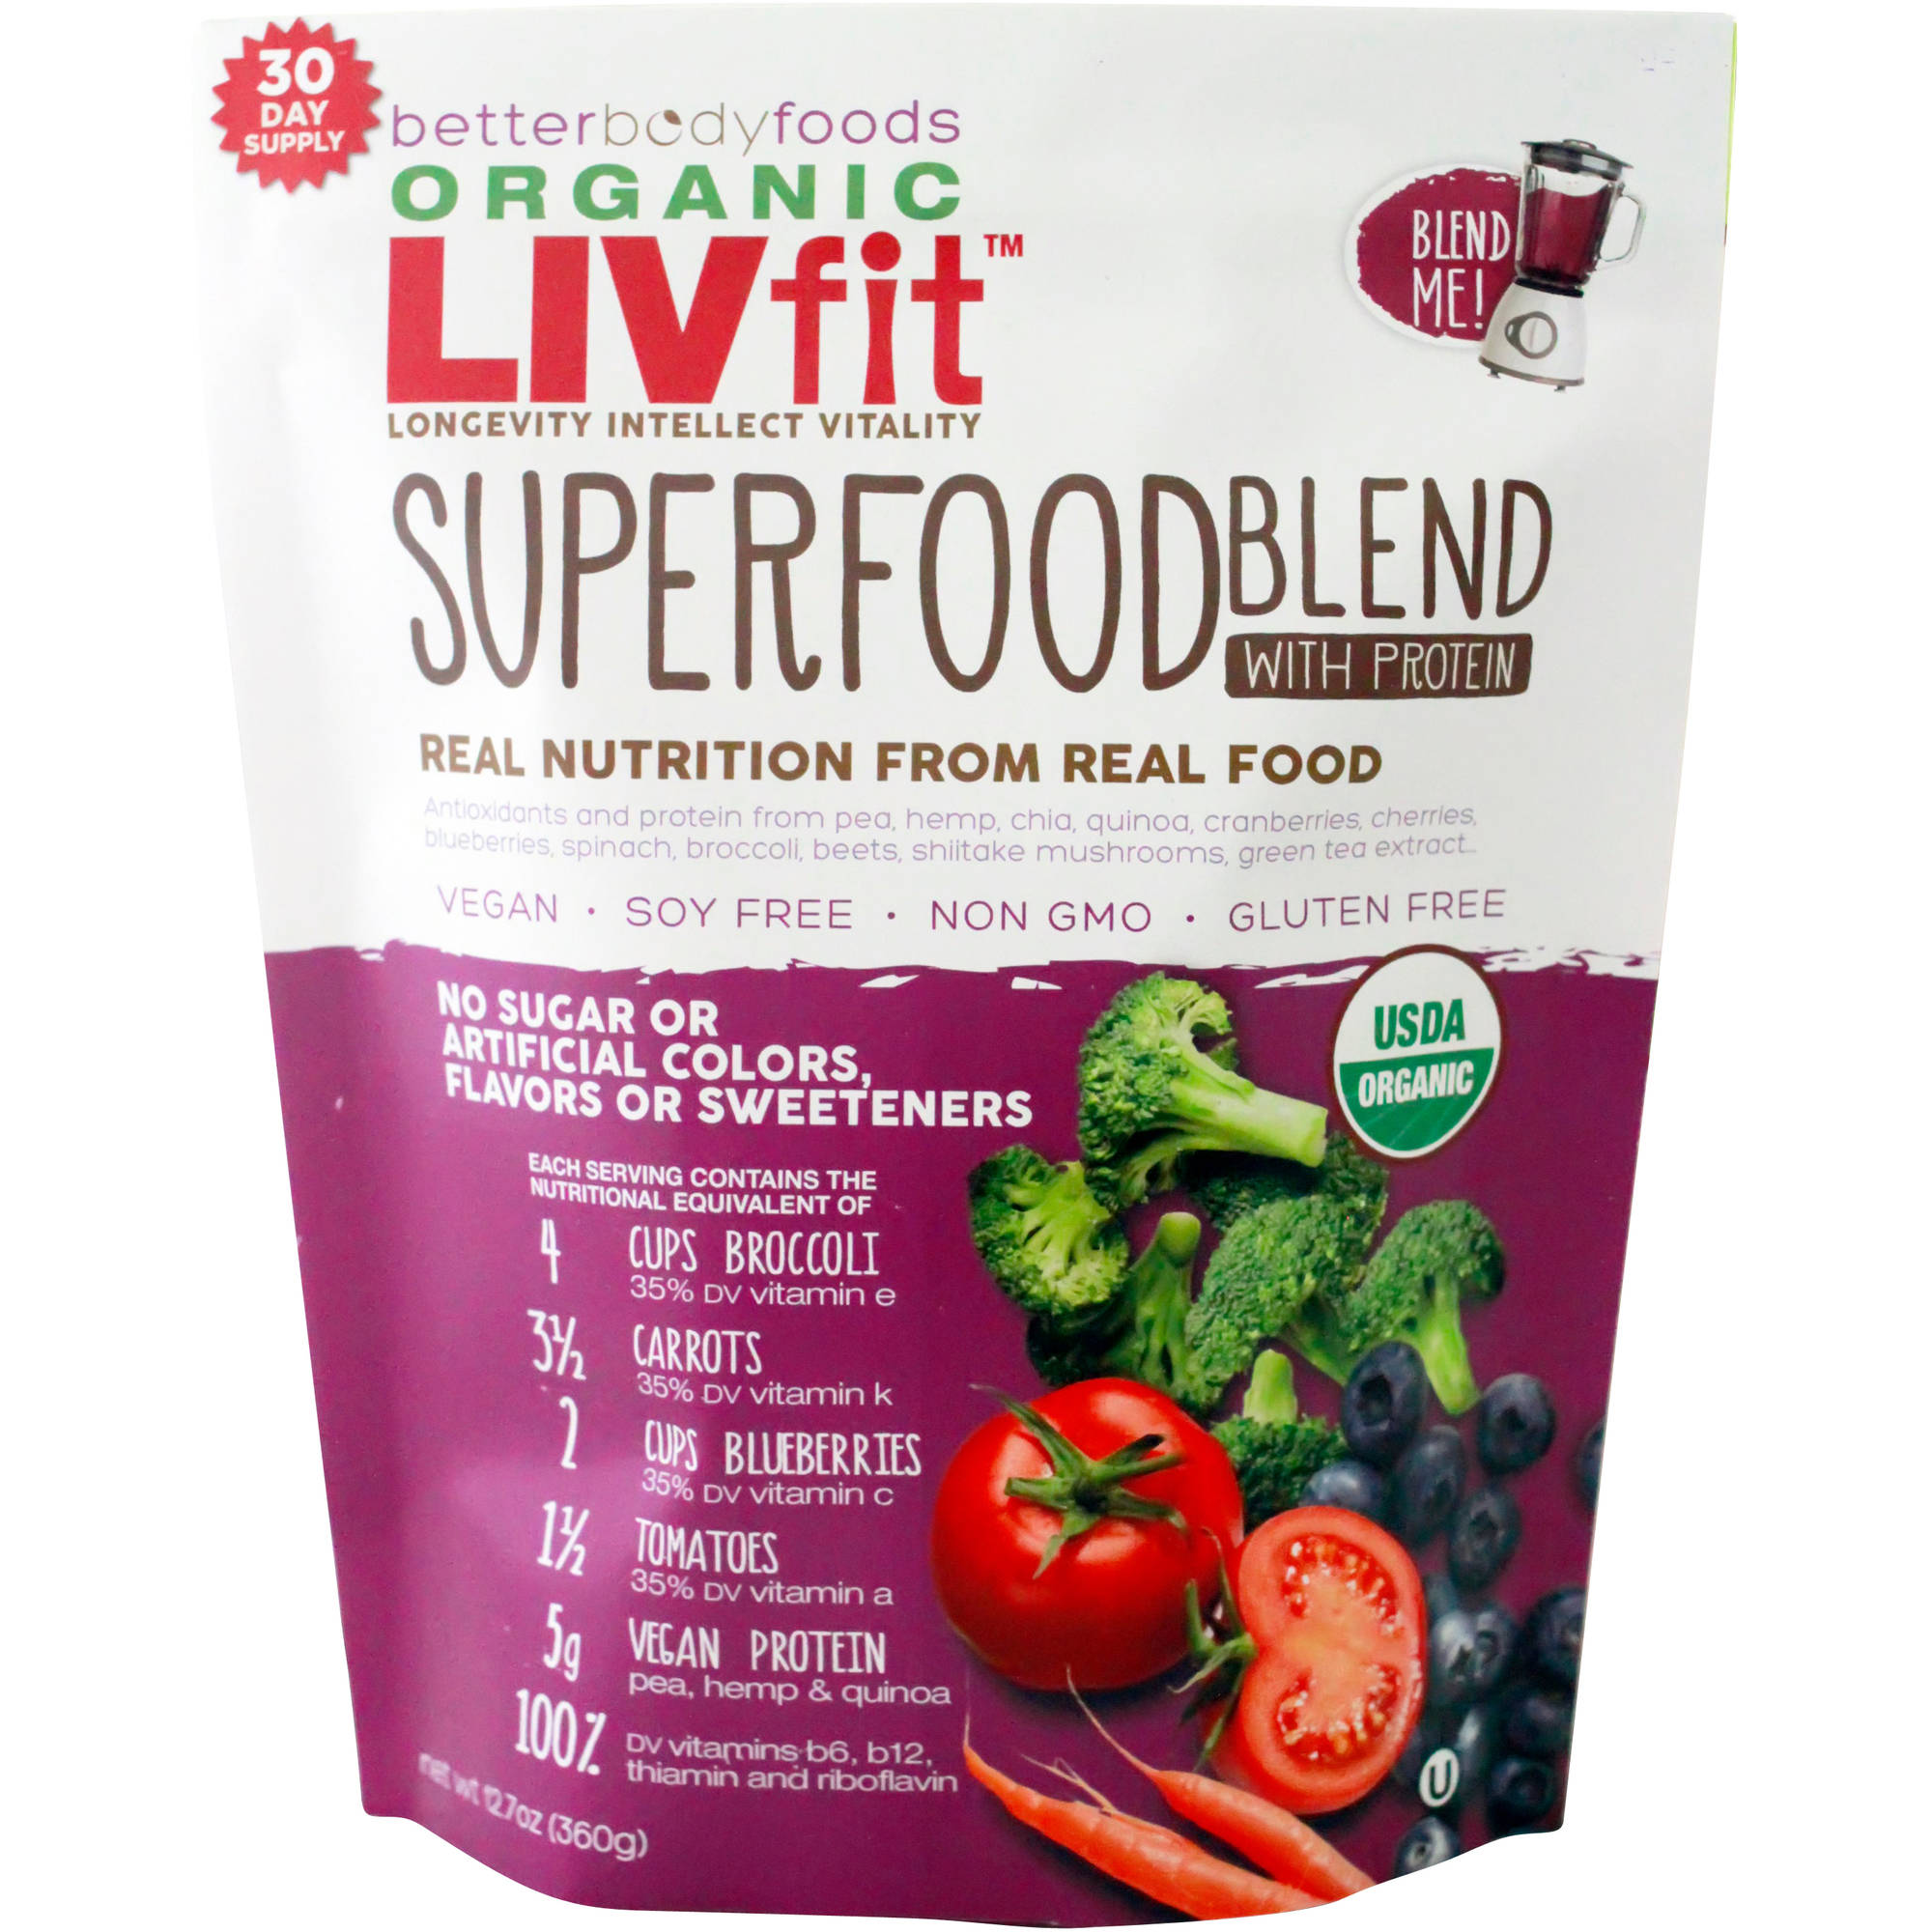 BetterBody Foods Organic LIVfit Superfood Blend with Protein, 12.7 oz